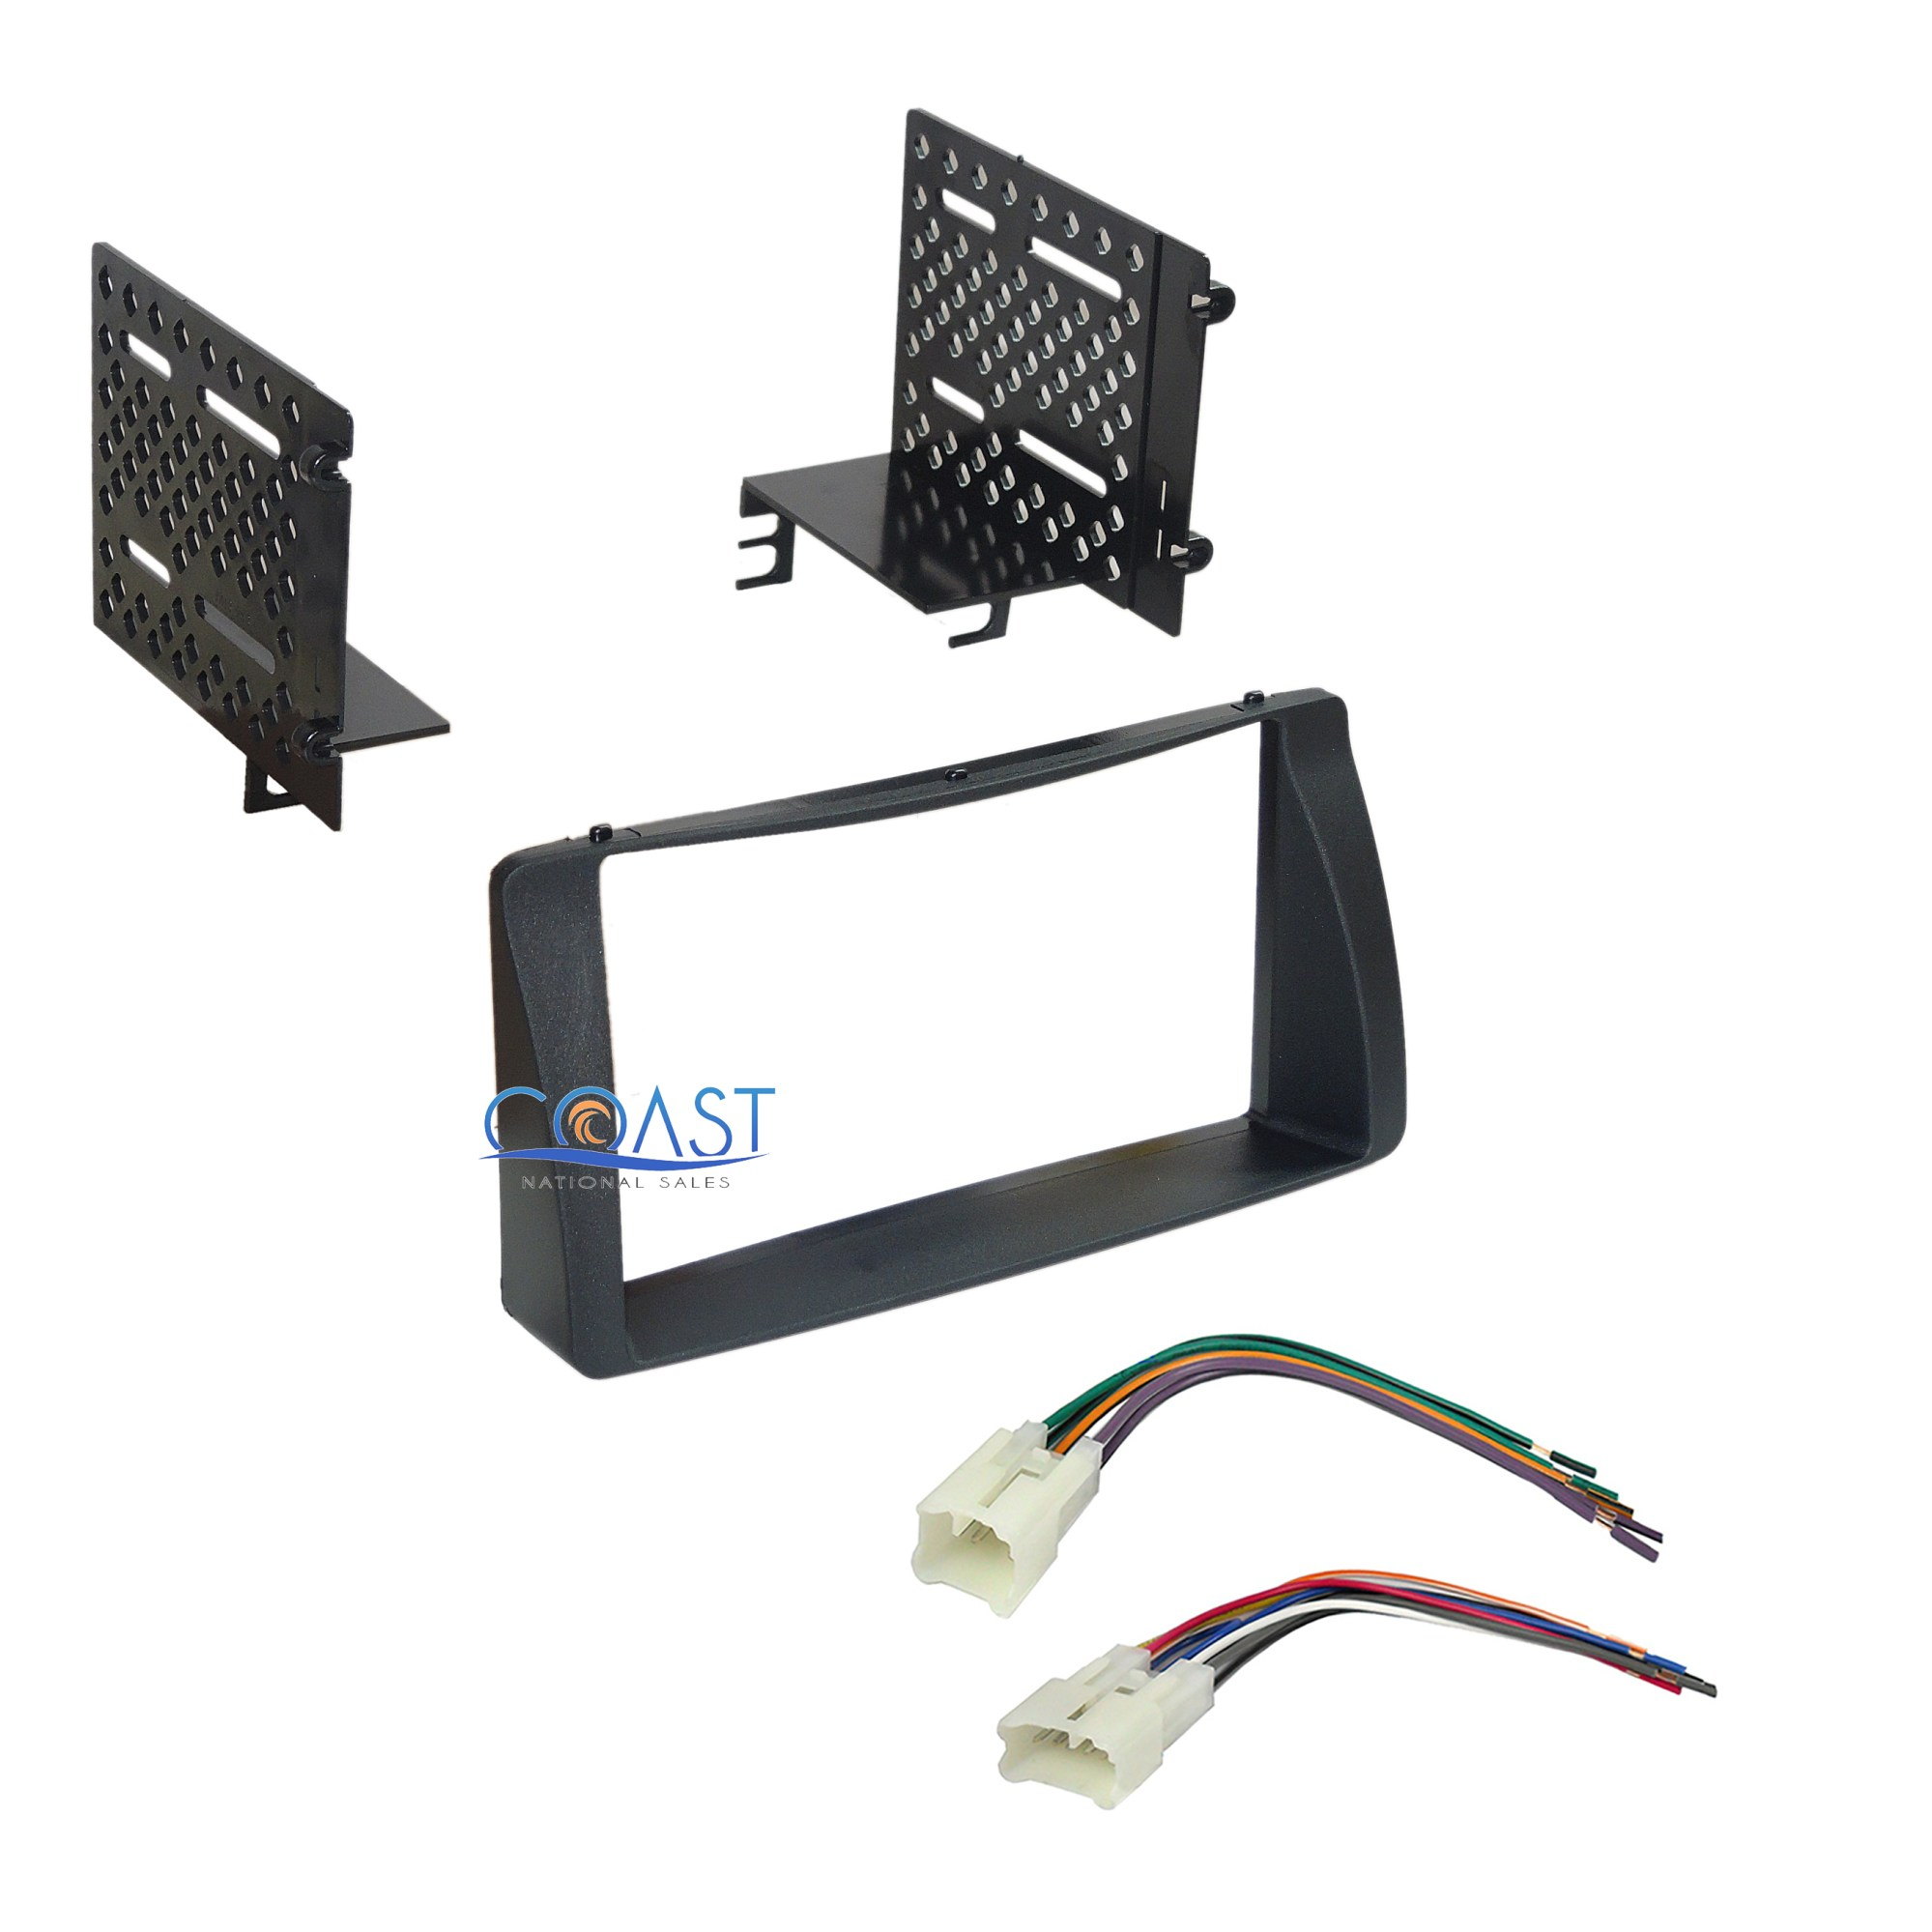 hight resolution of details about double din car radio stereo dash kit wire harness for 2003 2008 toyota corolla